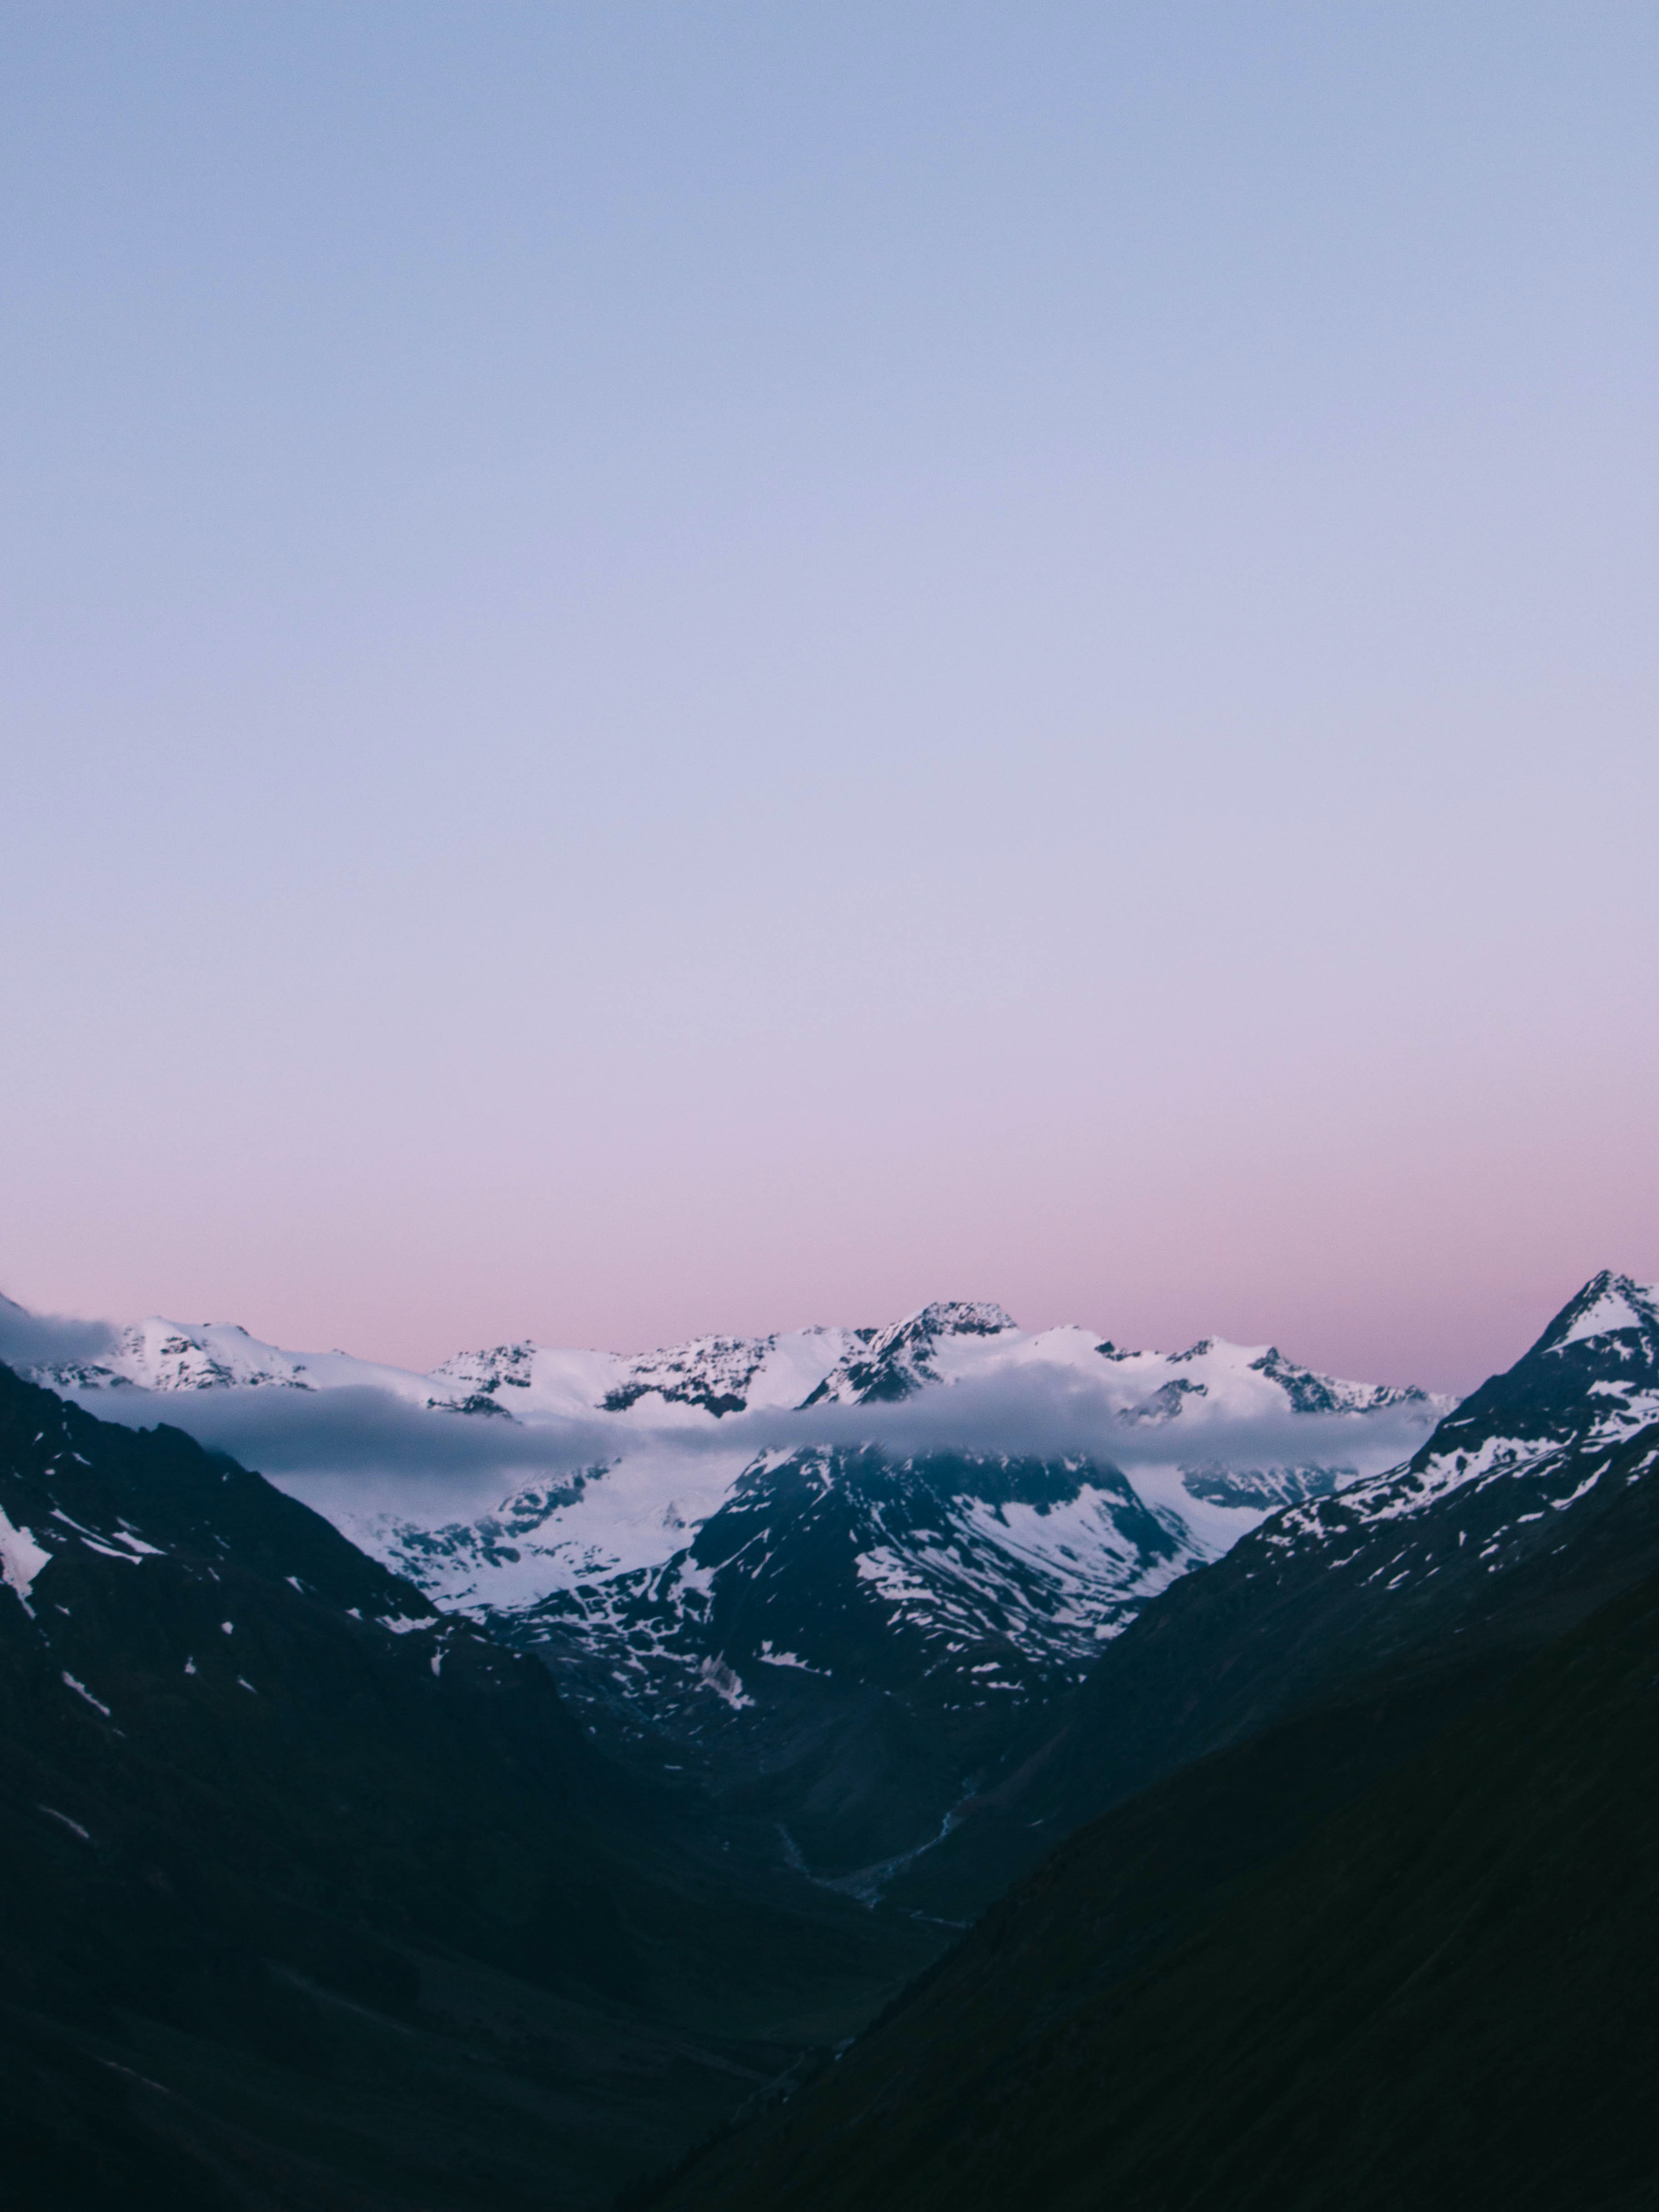 The top of snowy mountains under a light blue and violet sky